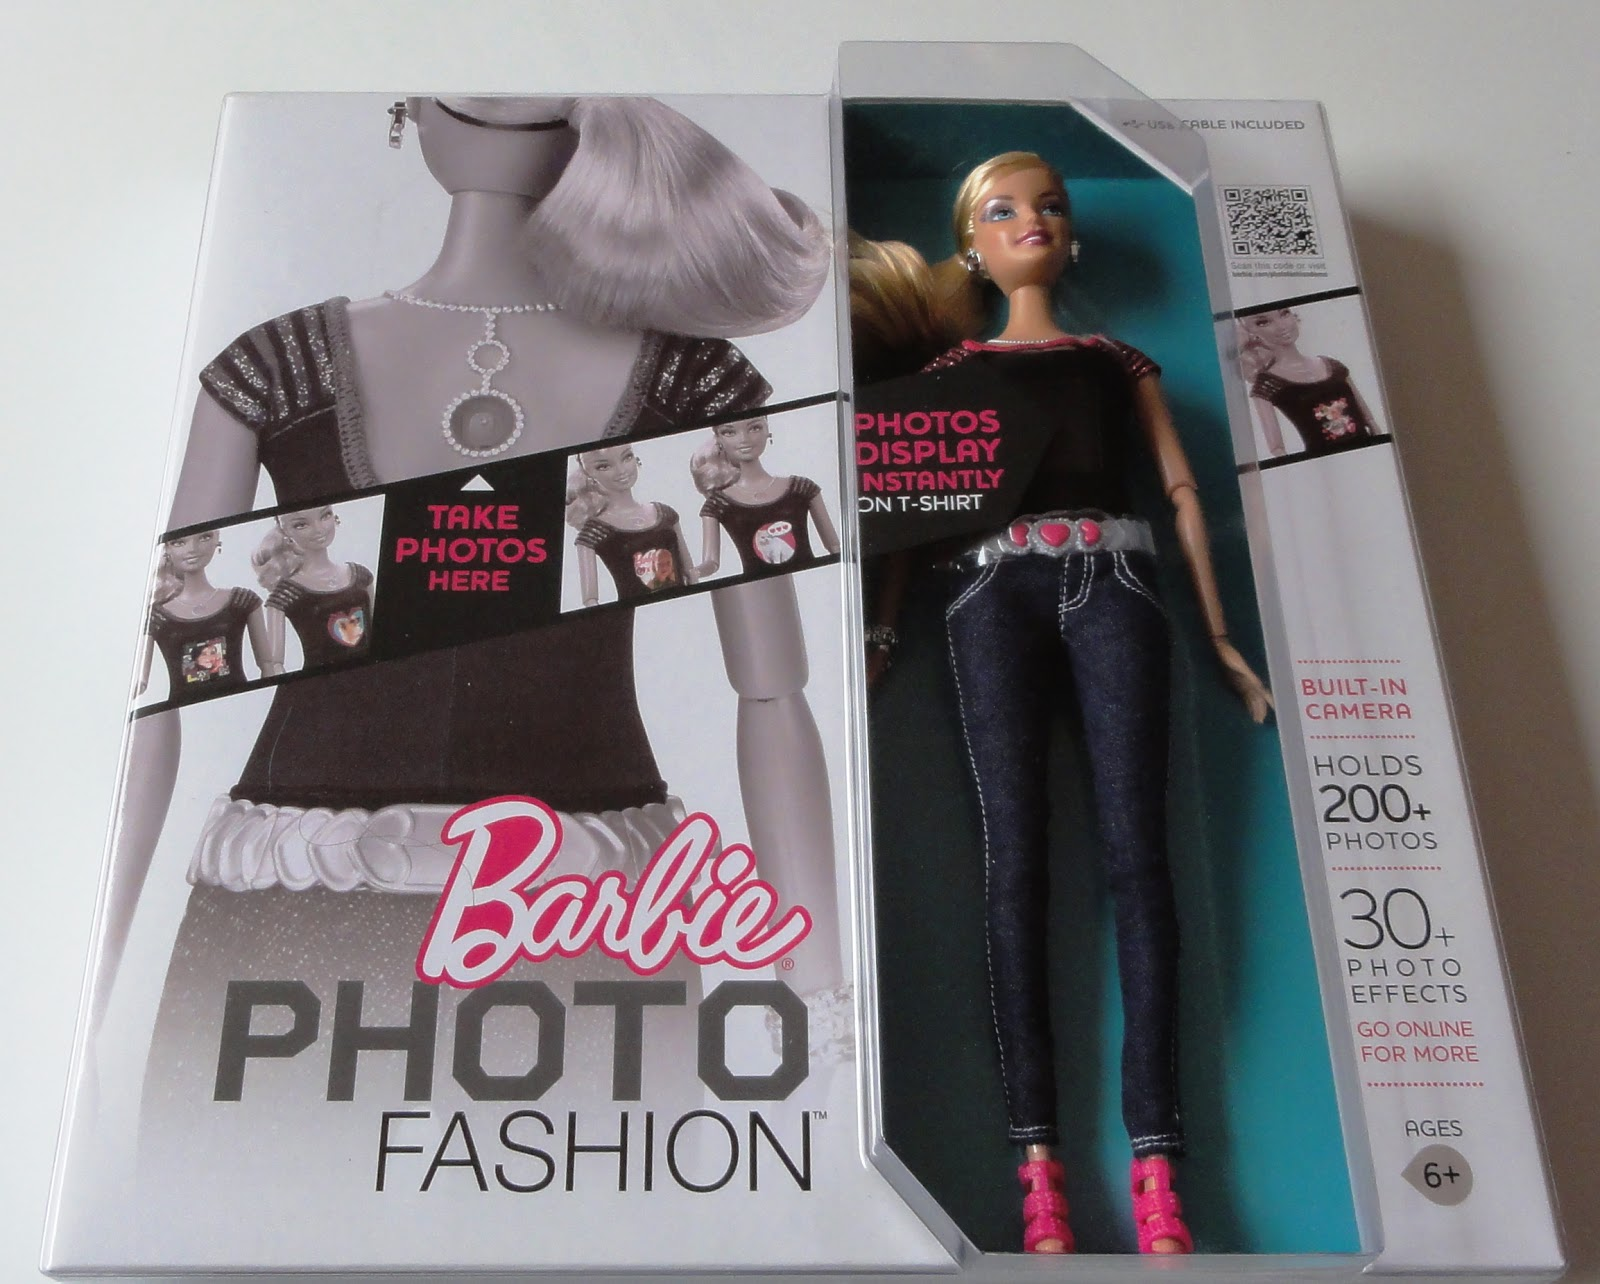 Barbie Photo Fashion Doll Review The box duly arrived